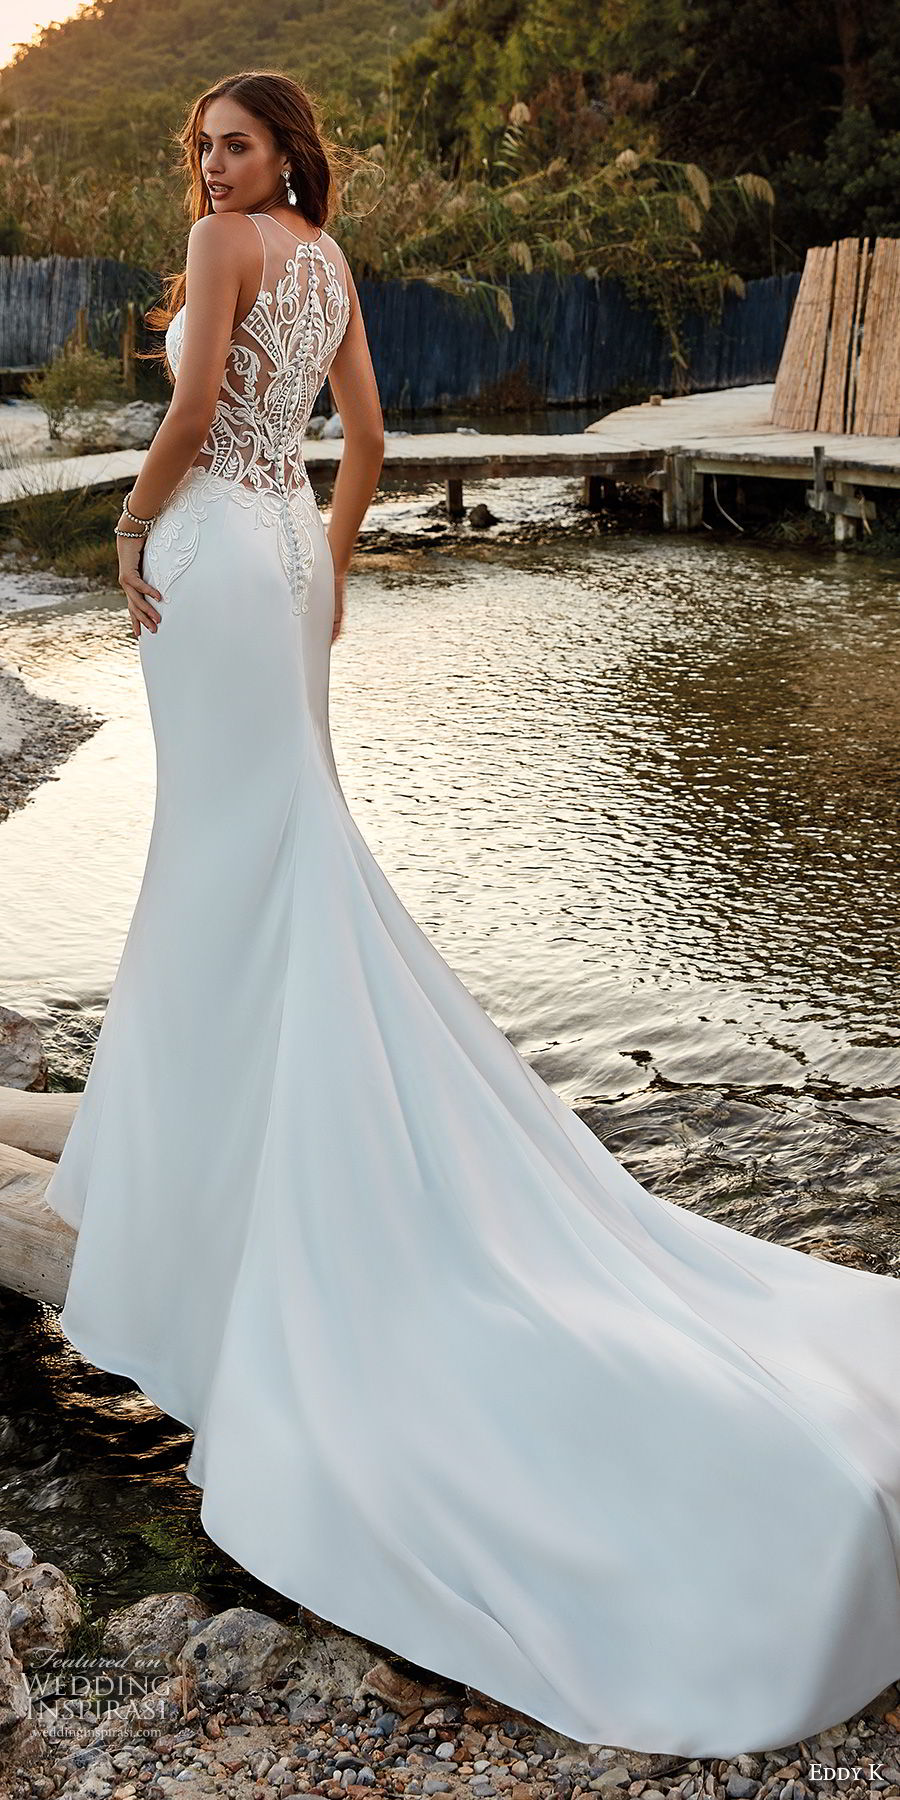 Trubridal Wedding Blog | Wedding Dresses Archives - Page 3 of 30 ...